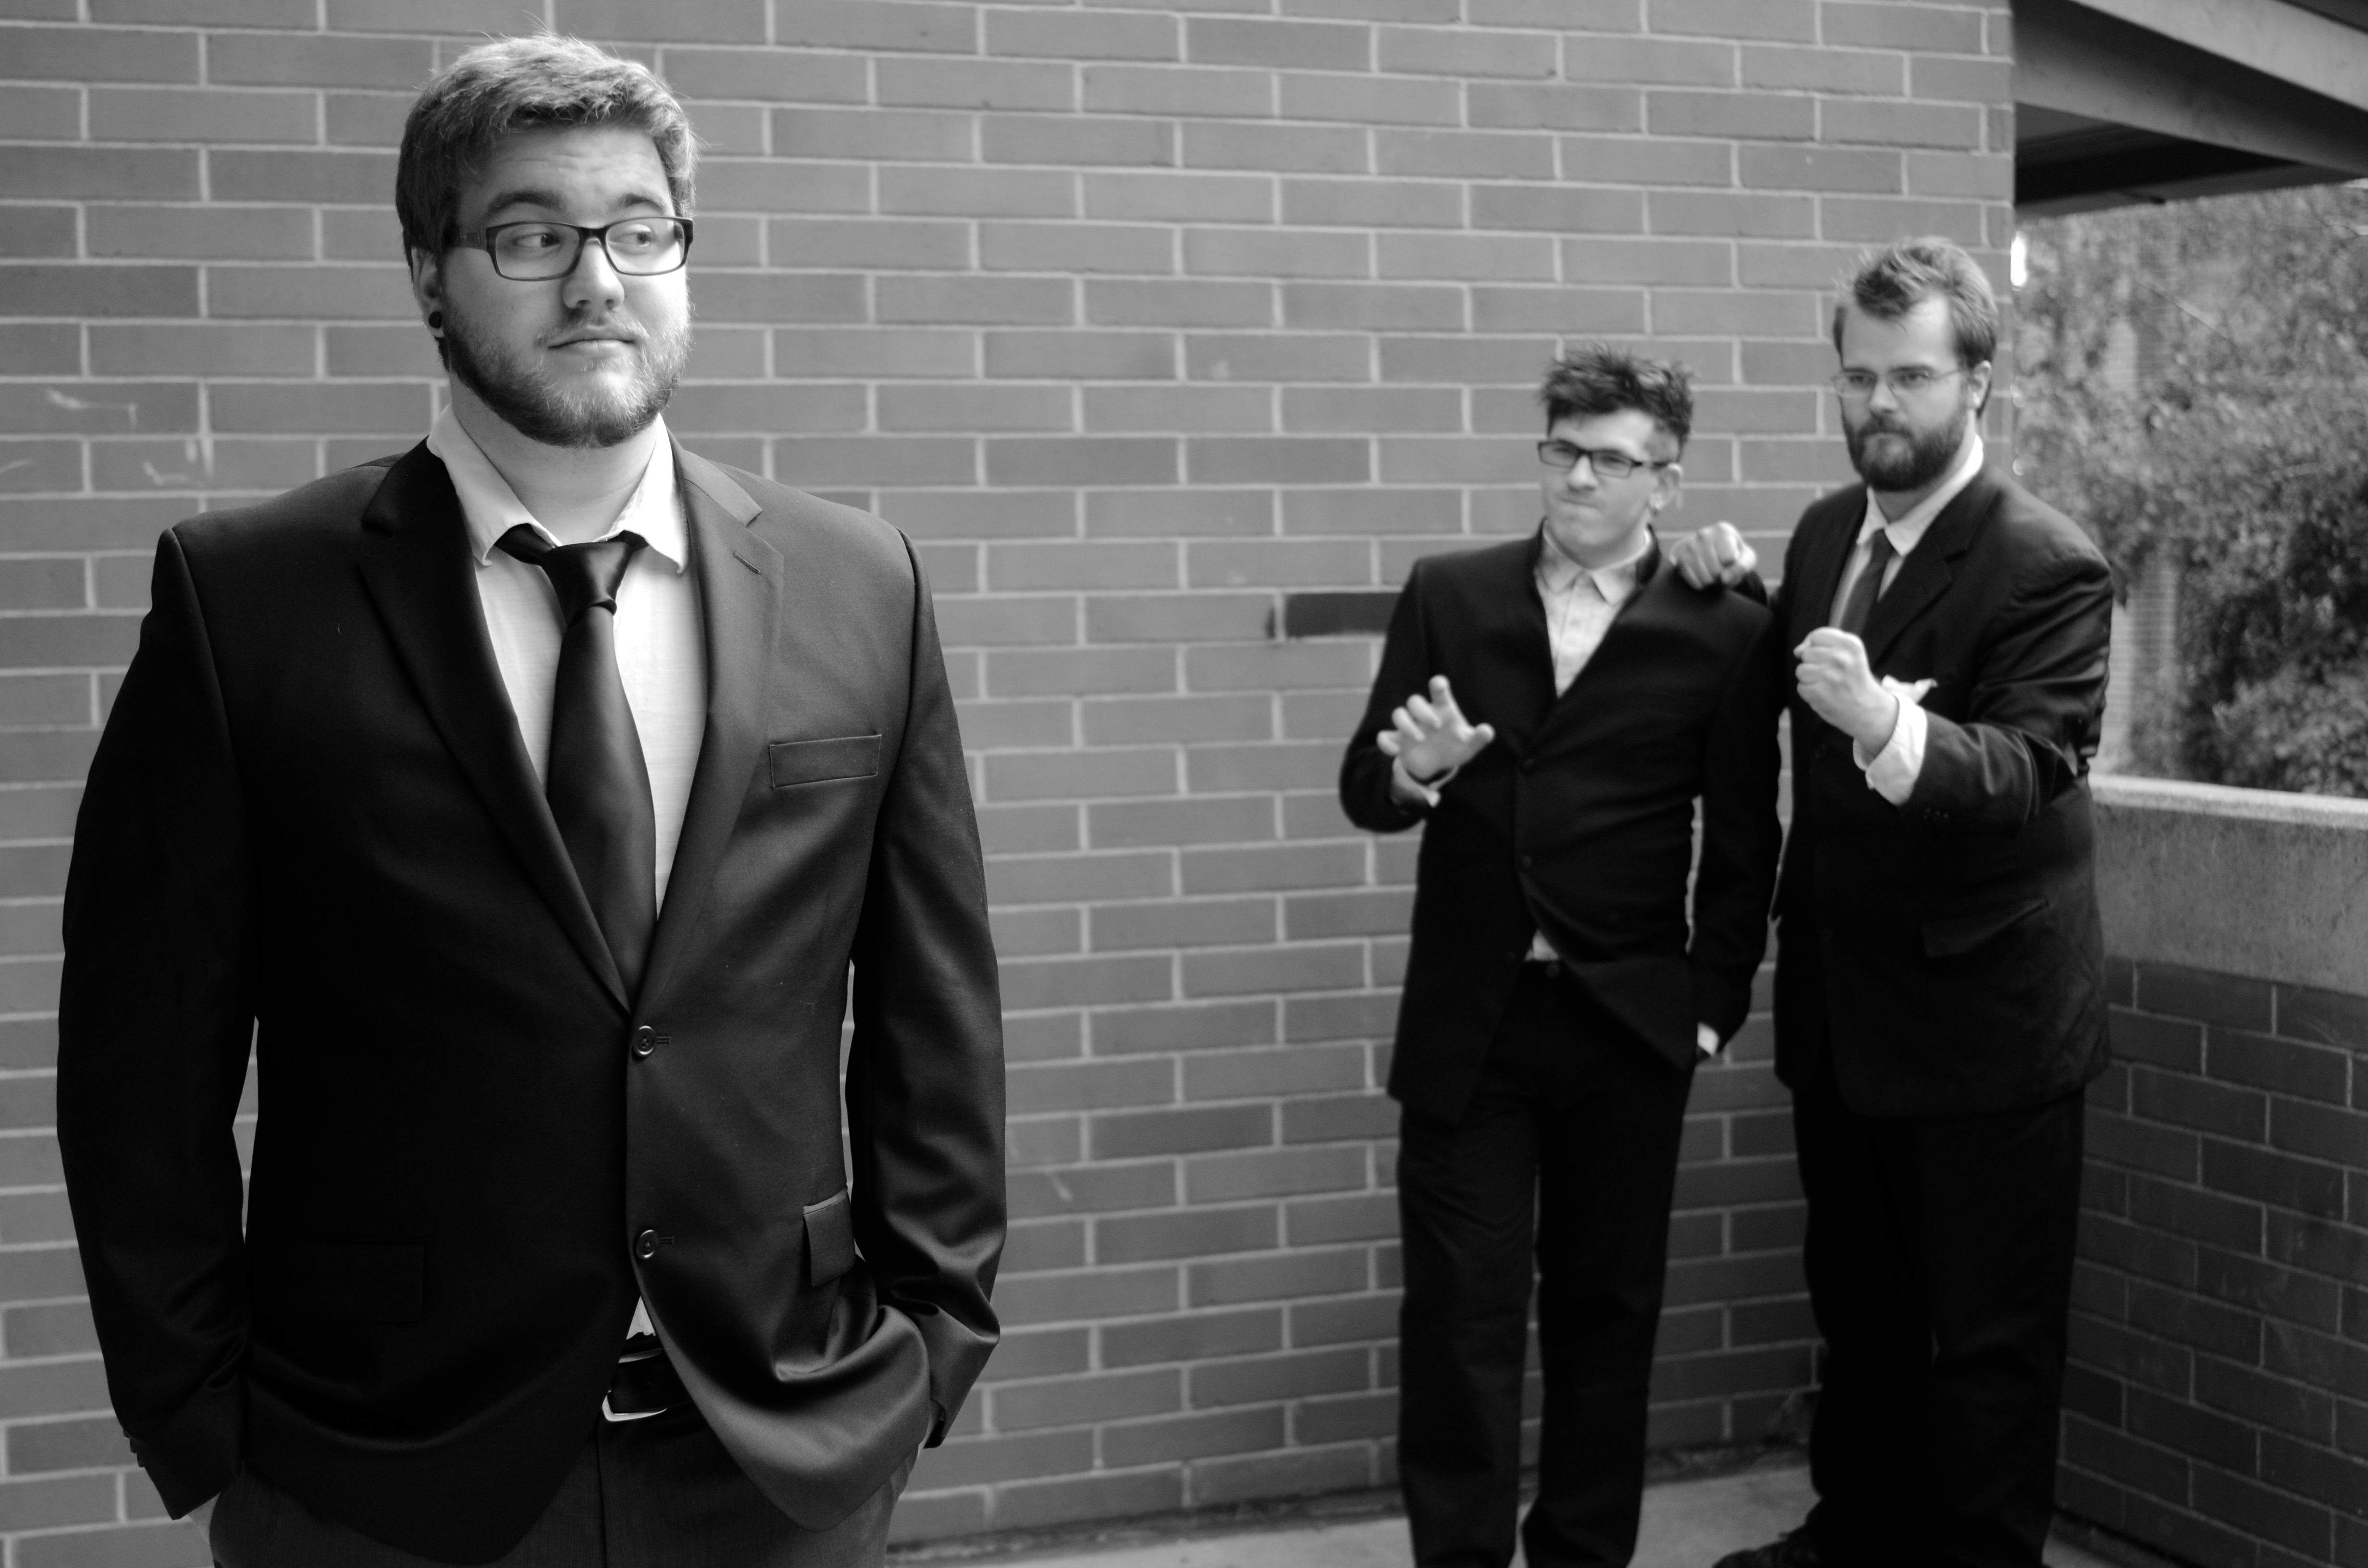 Relatable comedy: WSU's Nuthouse troupe provides laughs for locals